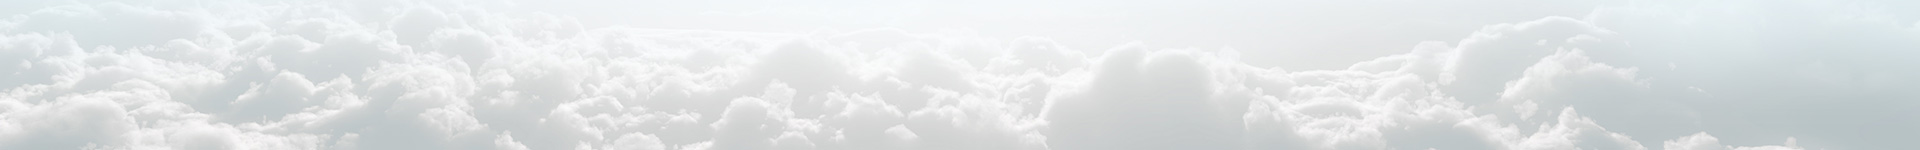 https://angelflightnz.co.nz/uploads/images/clouds-banner.jpg